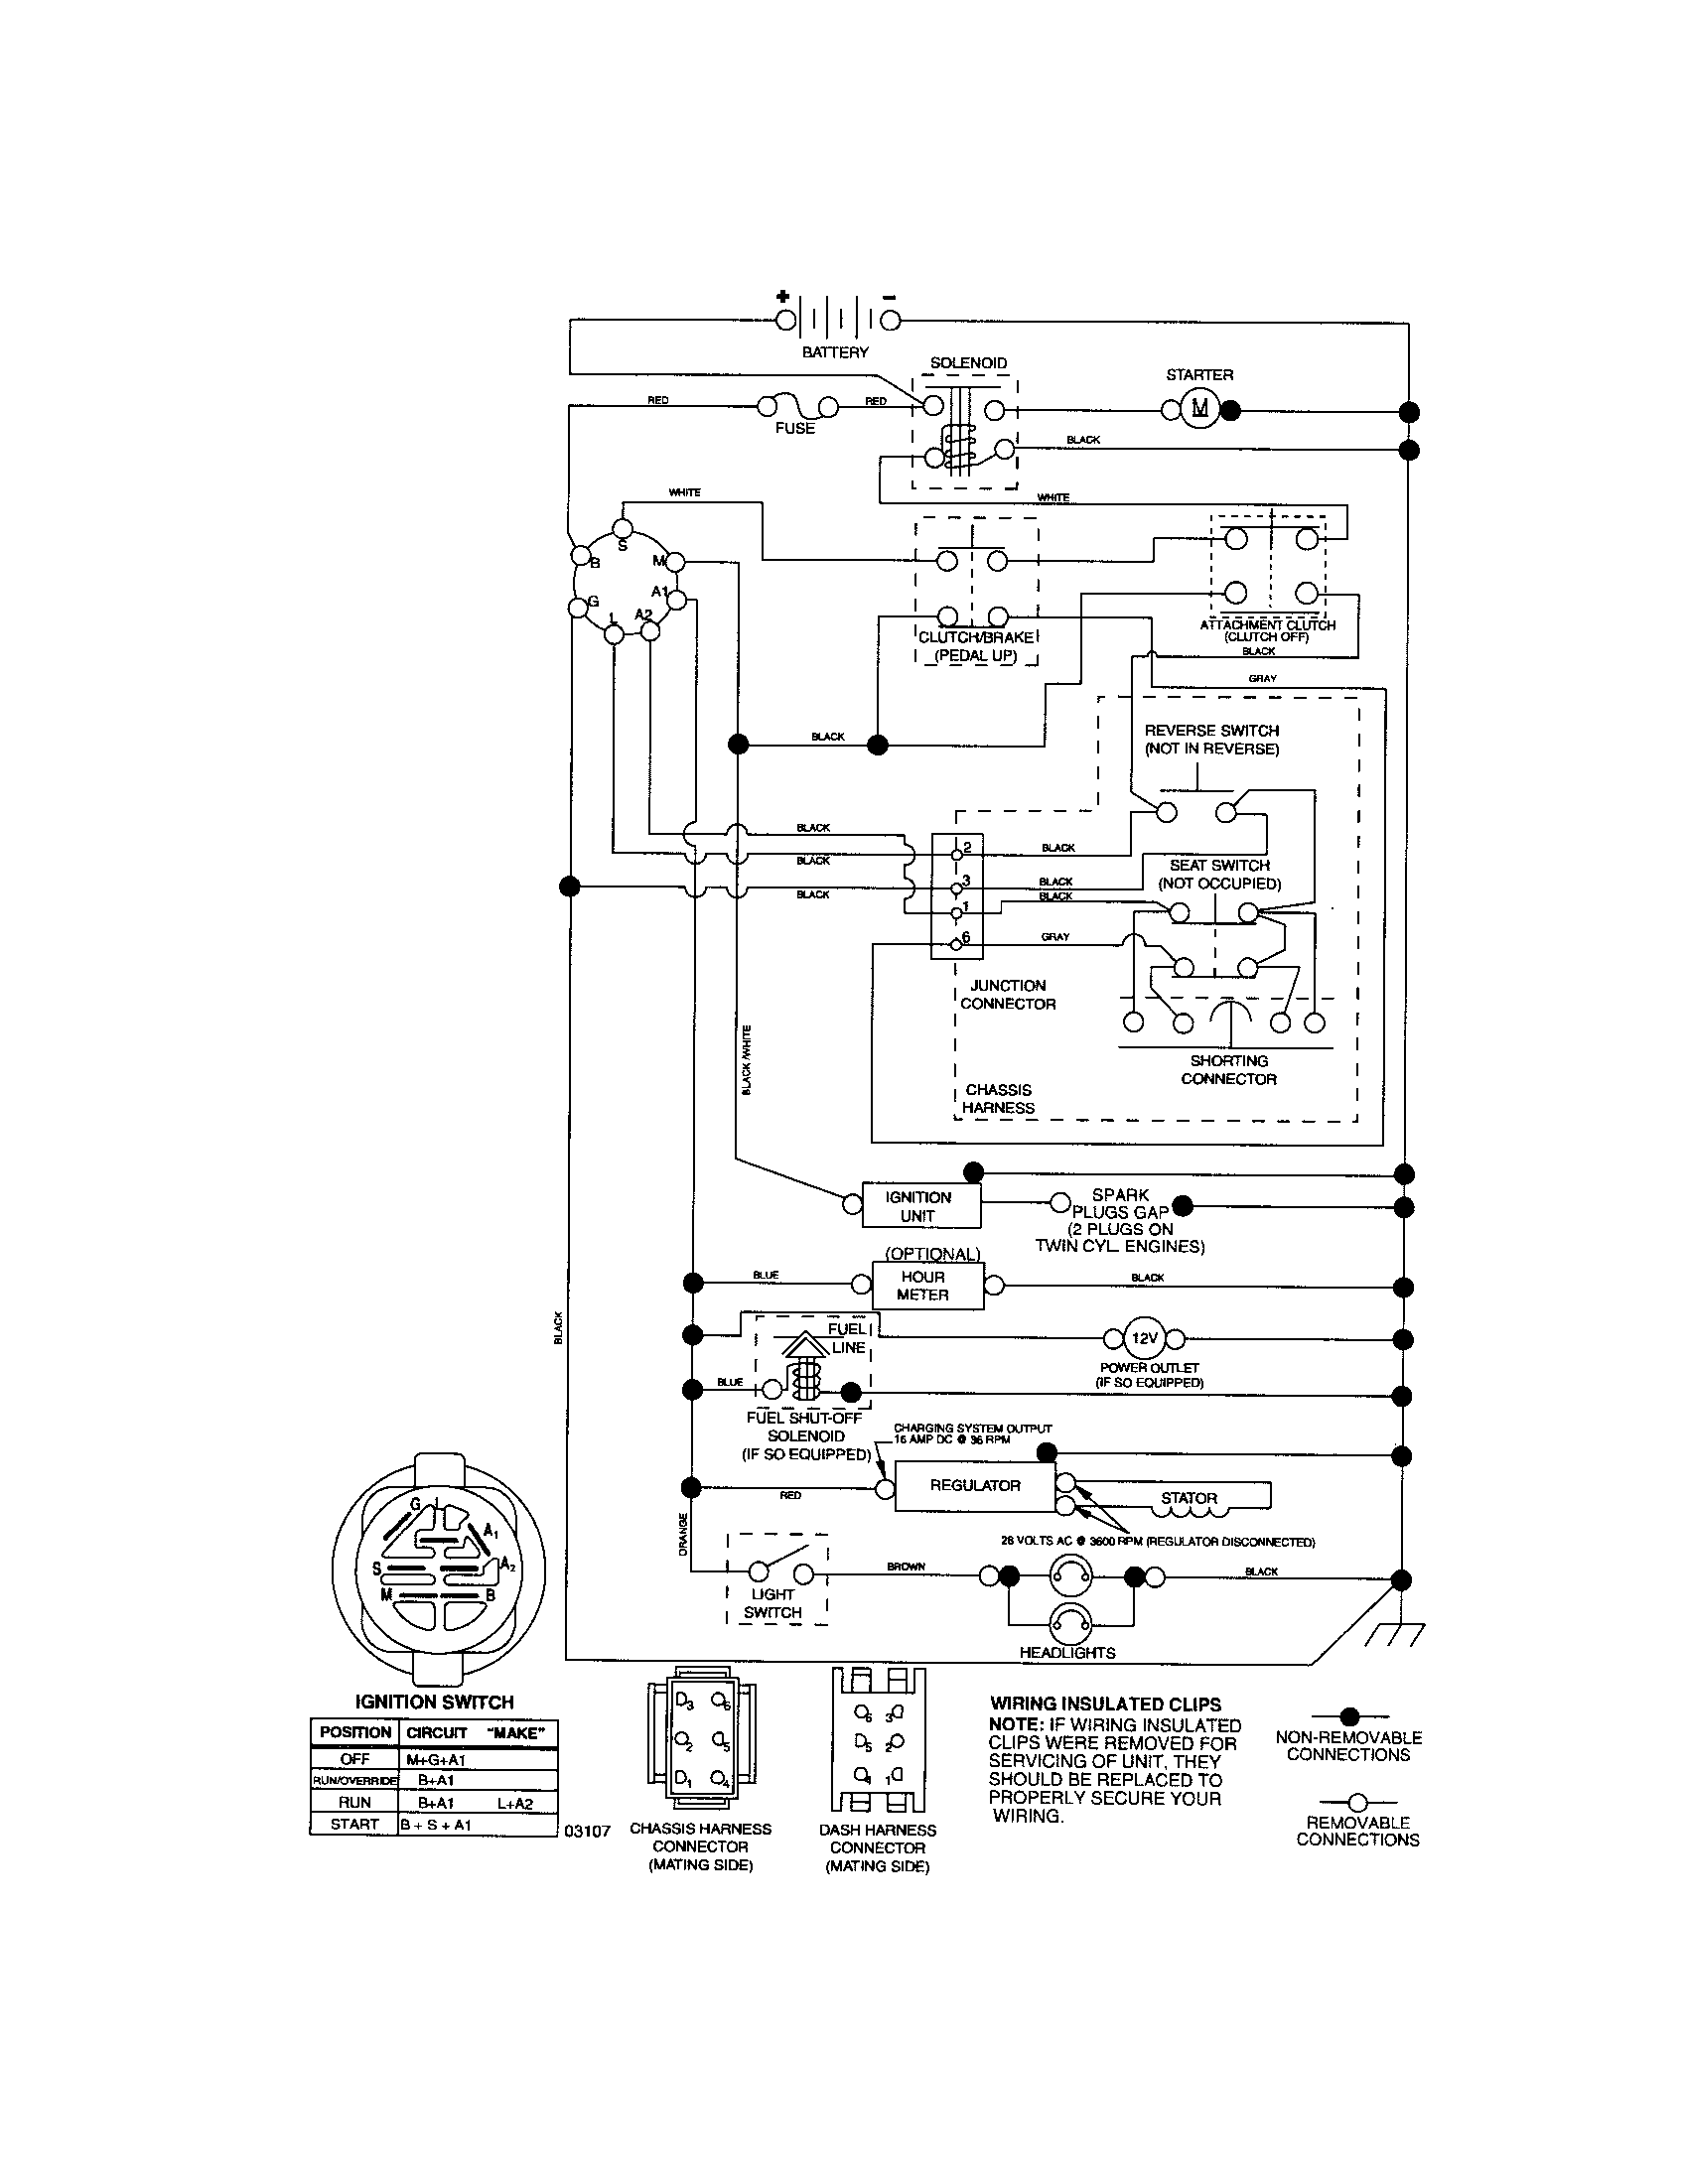 6af5f1447fd13c8443376822ddc1e105 craftsman riding mower electrical diagram wiring diagram  at fashall.co